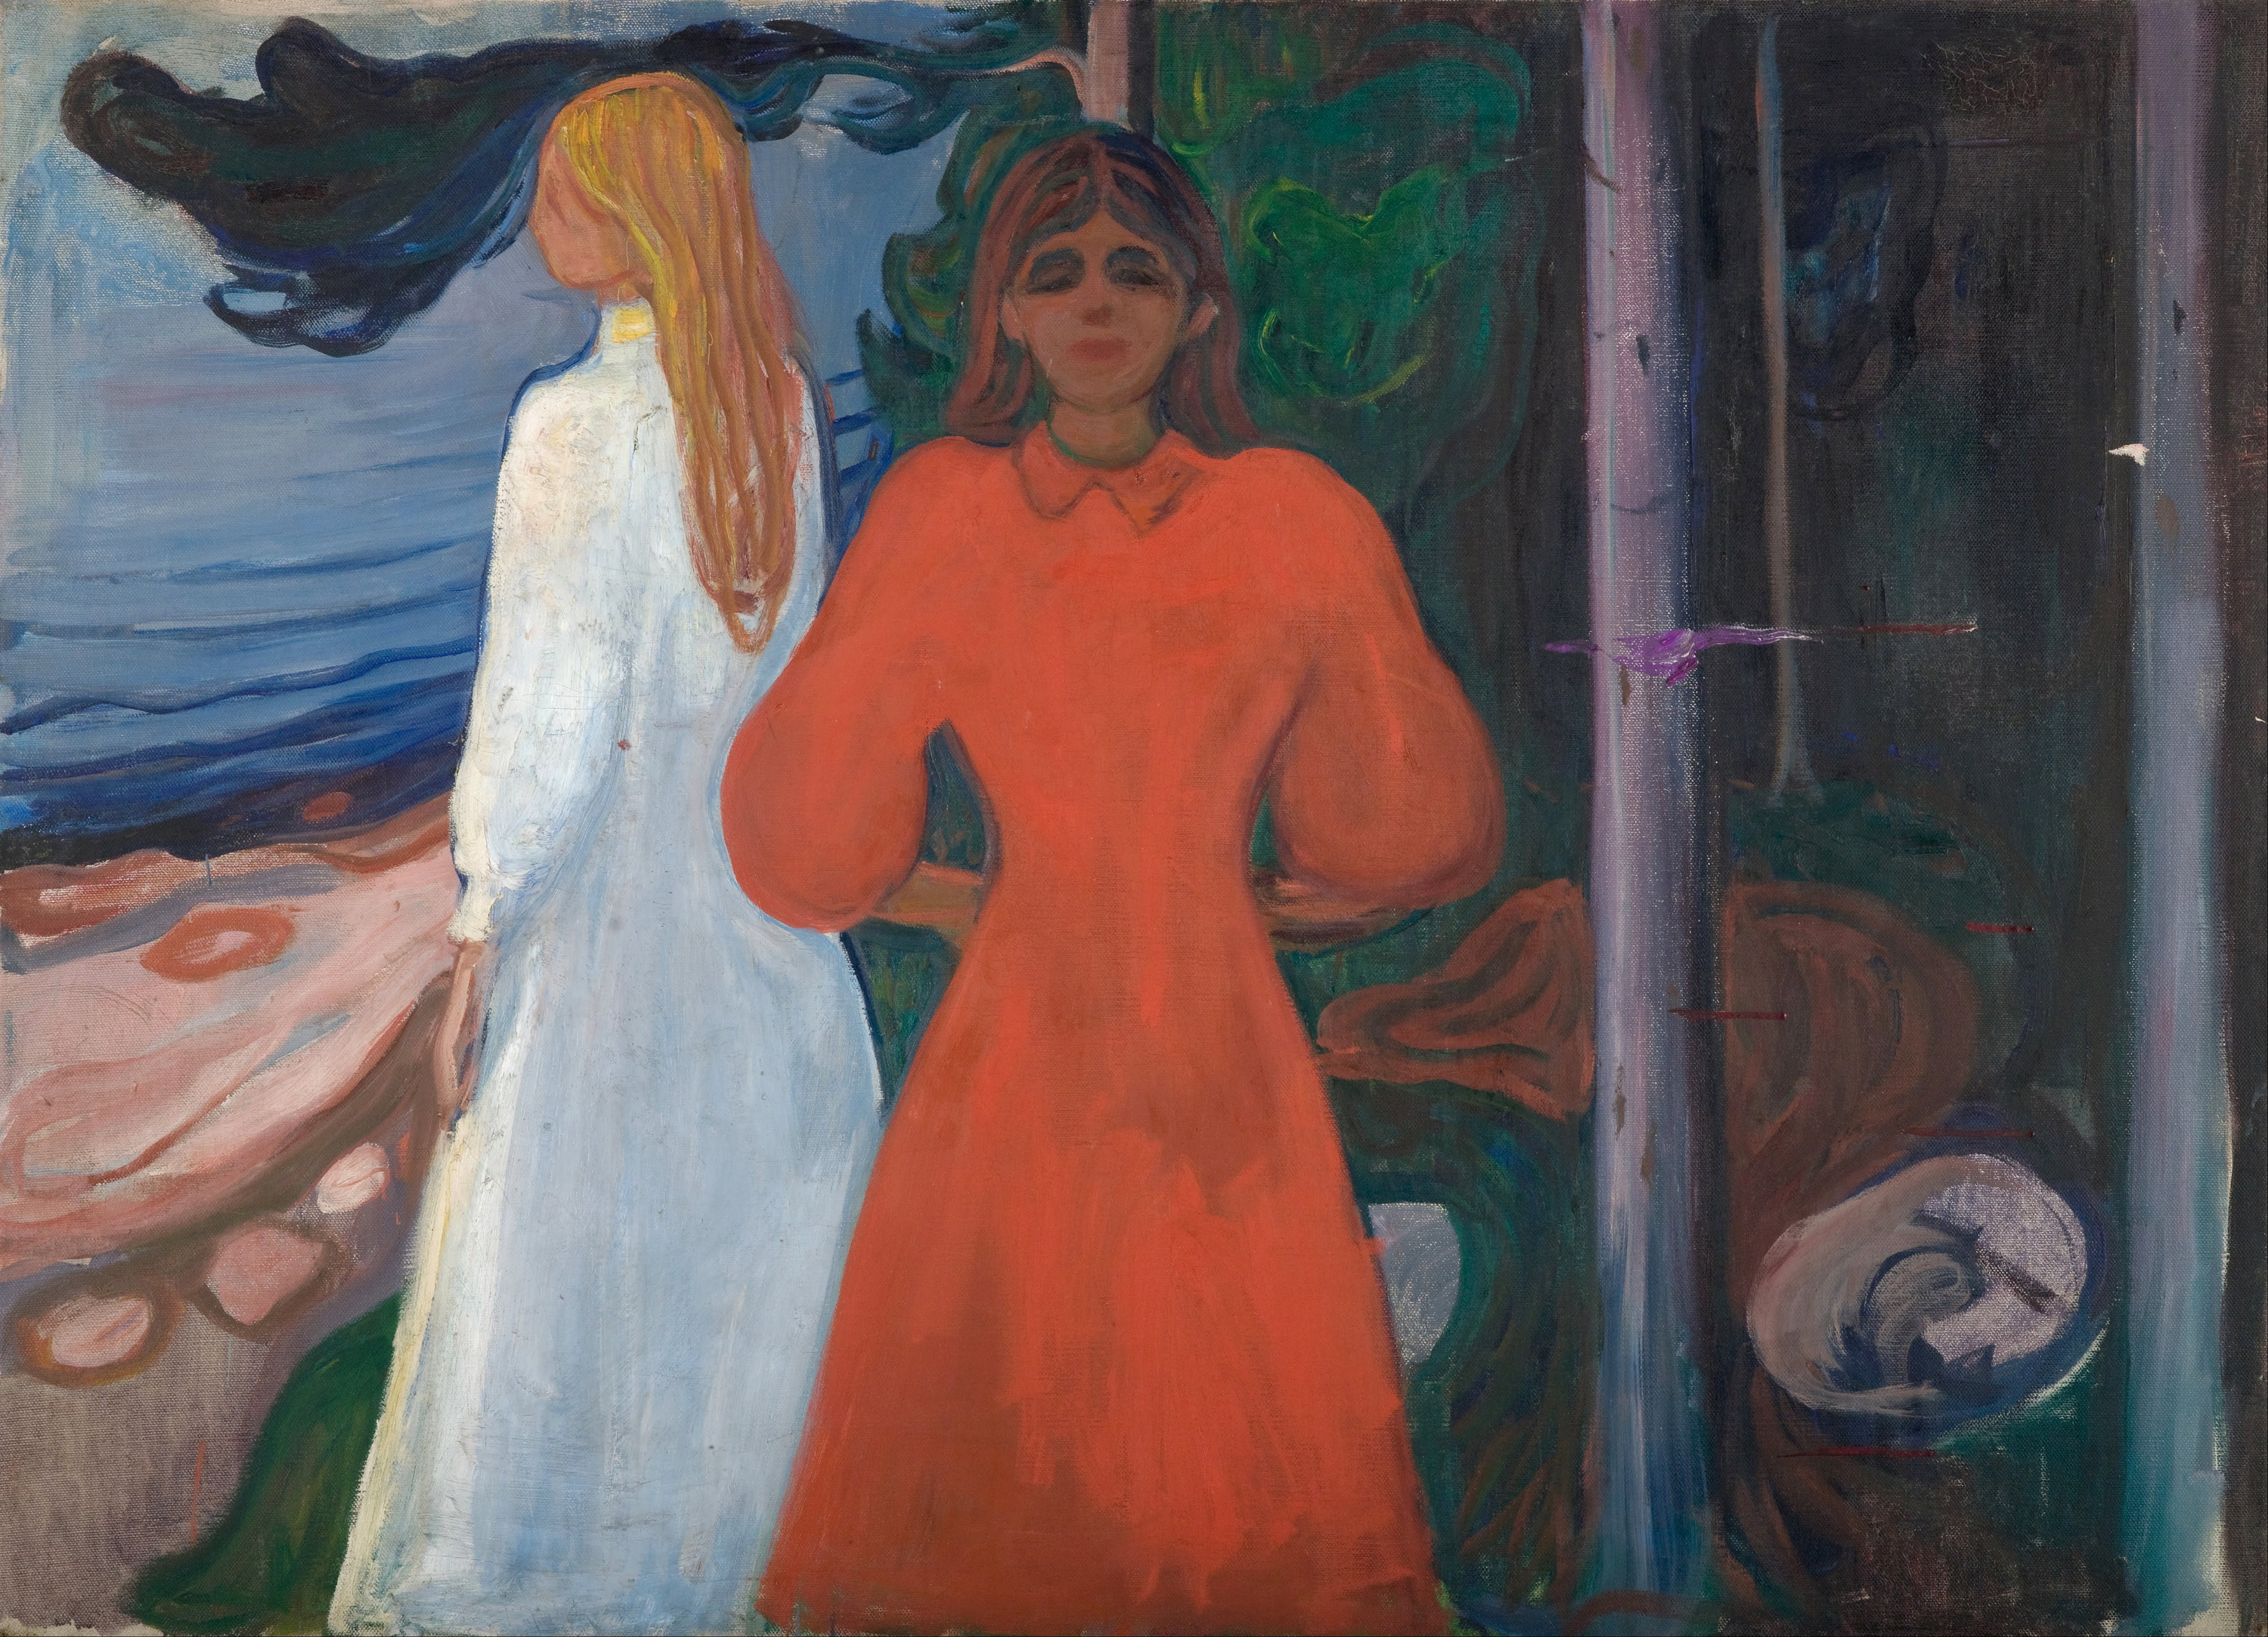 Red and White, 1900 — Edvard Munch